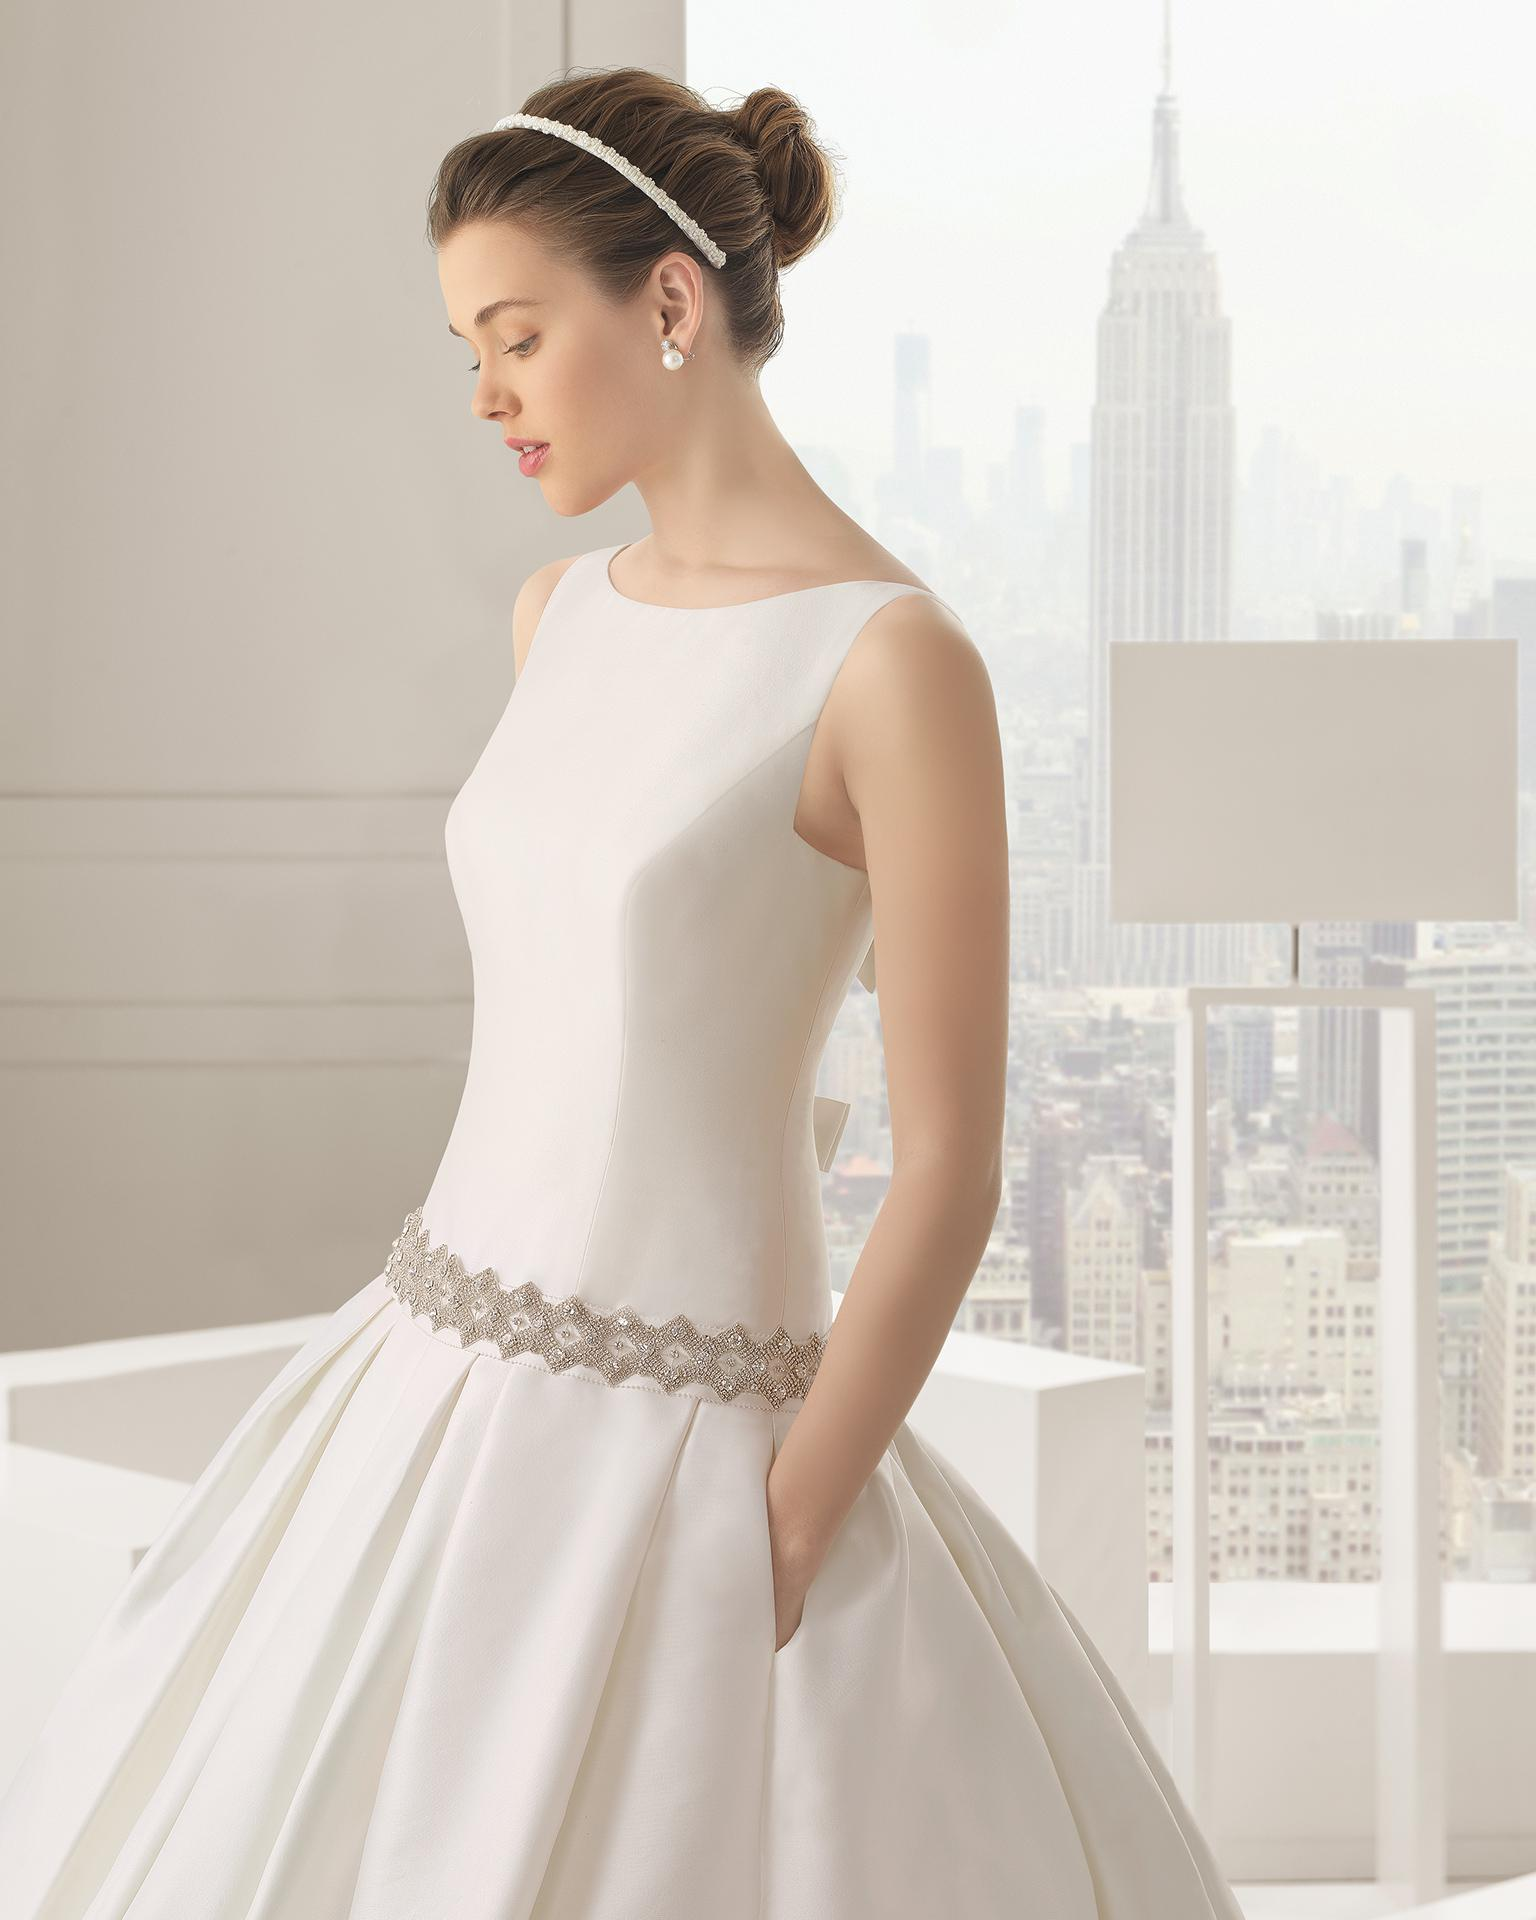 Ivory satin low waist wedding dress plus size ball gown for Free wedding dresses low income